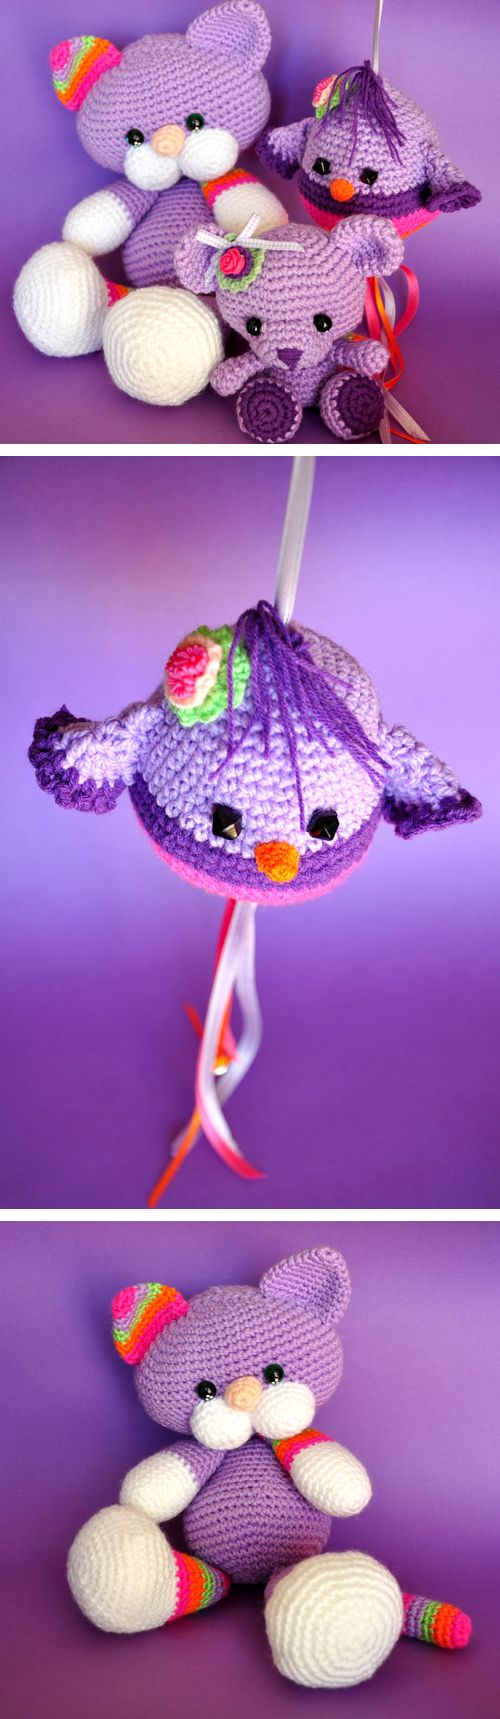 Chica outlet - cat, bear and bird (free pattern) | Amigurumi ideas ...